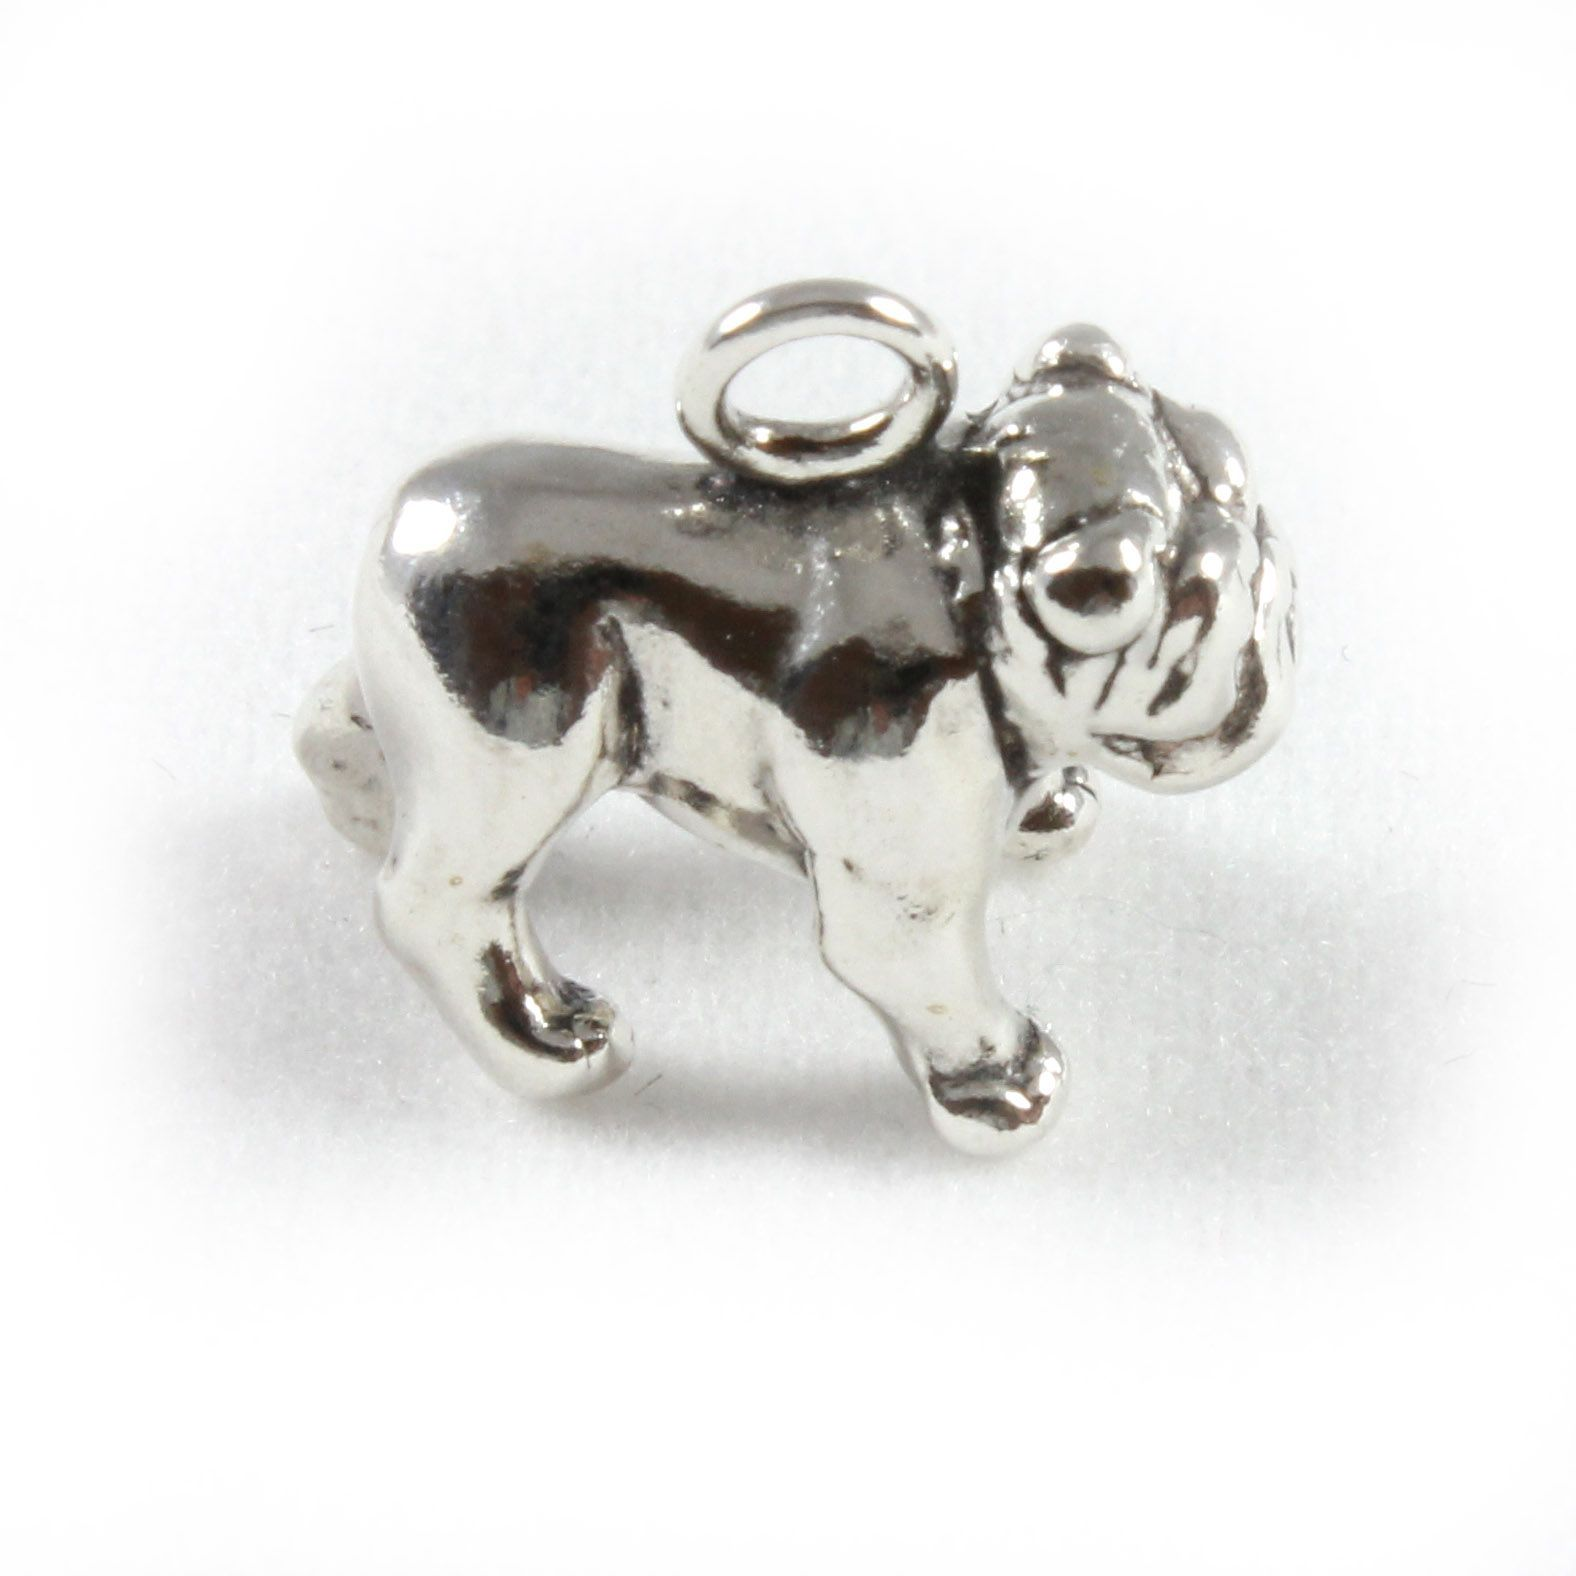 pandora bulldog charm charm school uk gt sterling silver charms gt dogs gt bulldog 8063